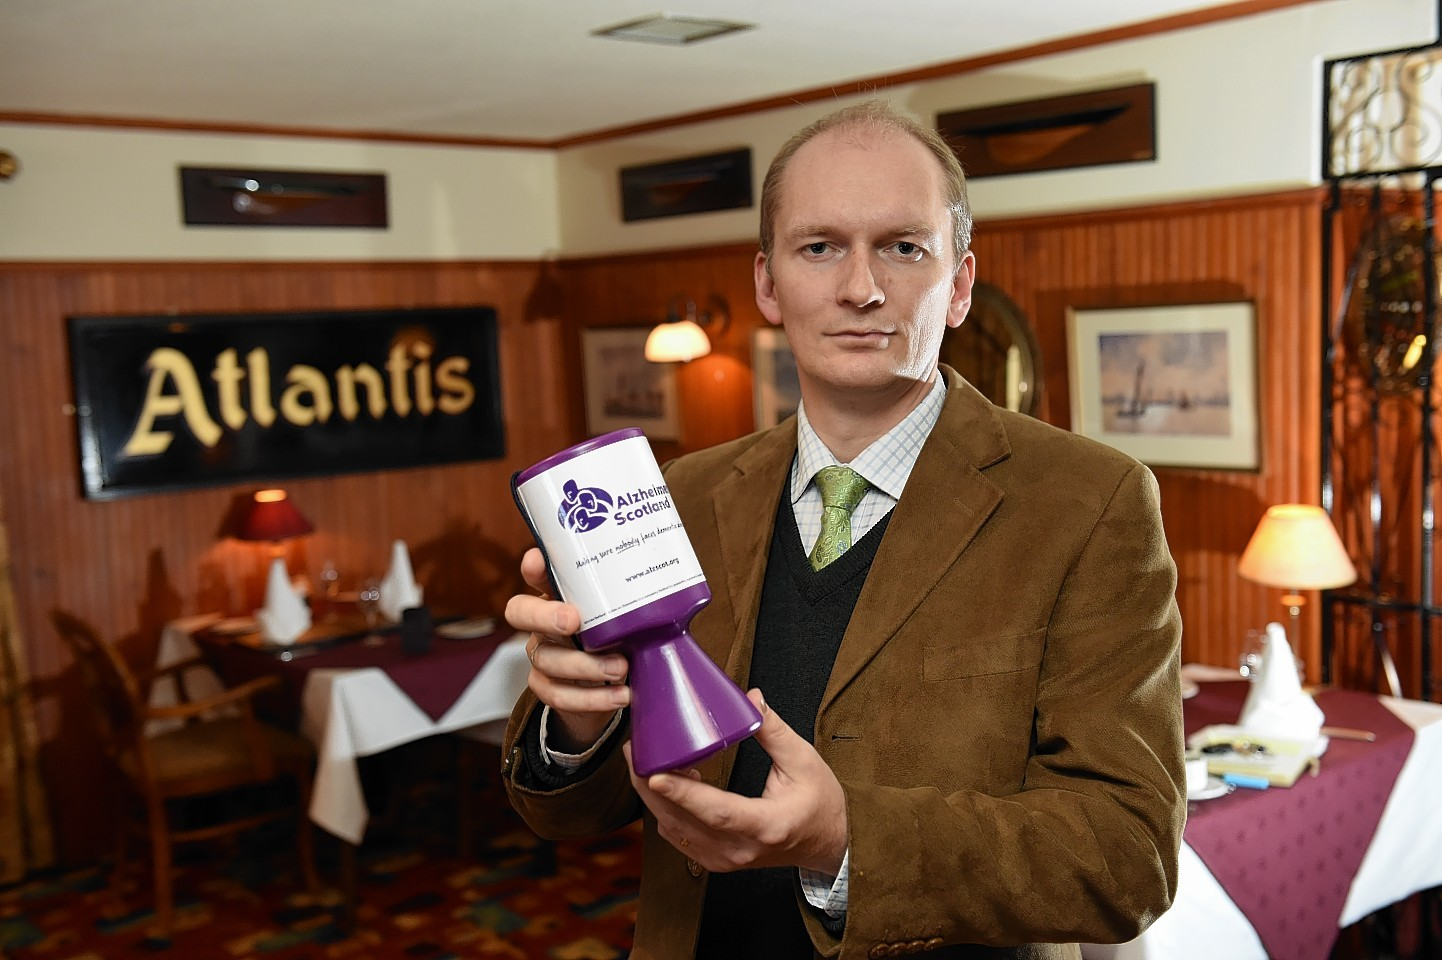 Mariner Hotel owner Mike Edwards is leading the fundraising efforts